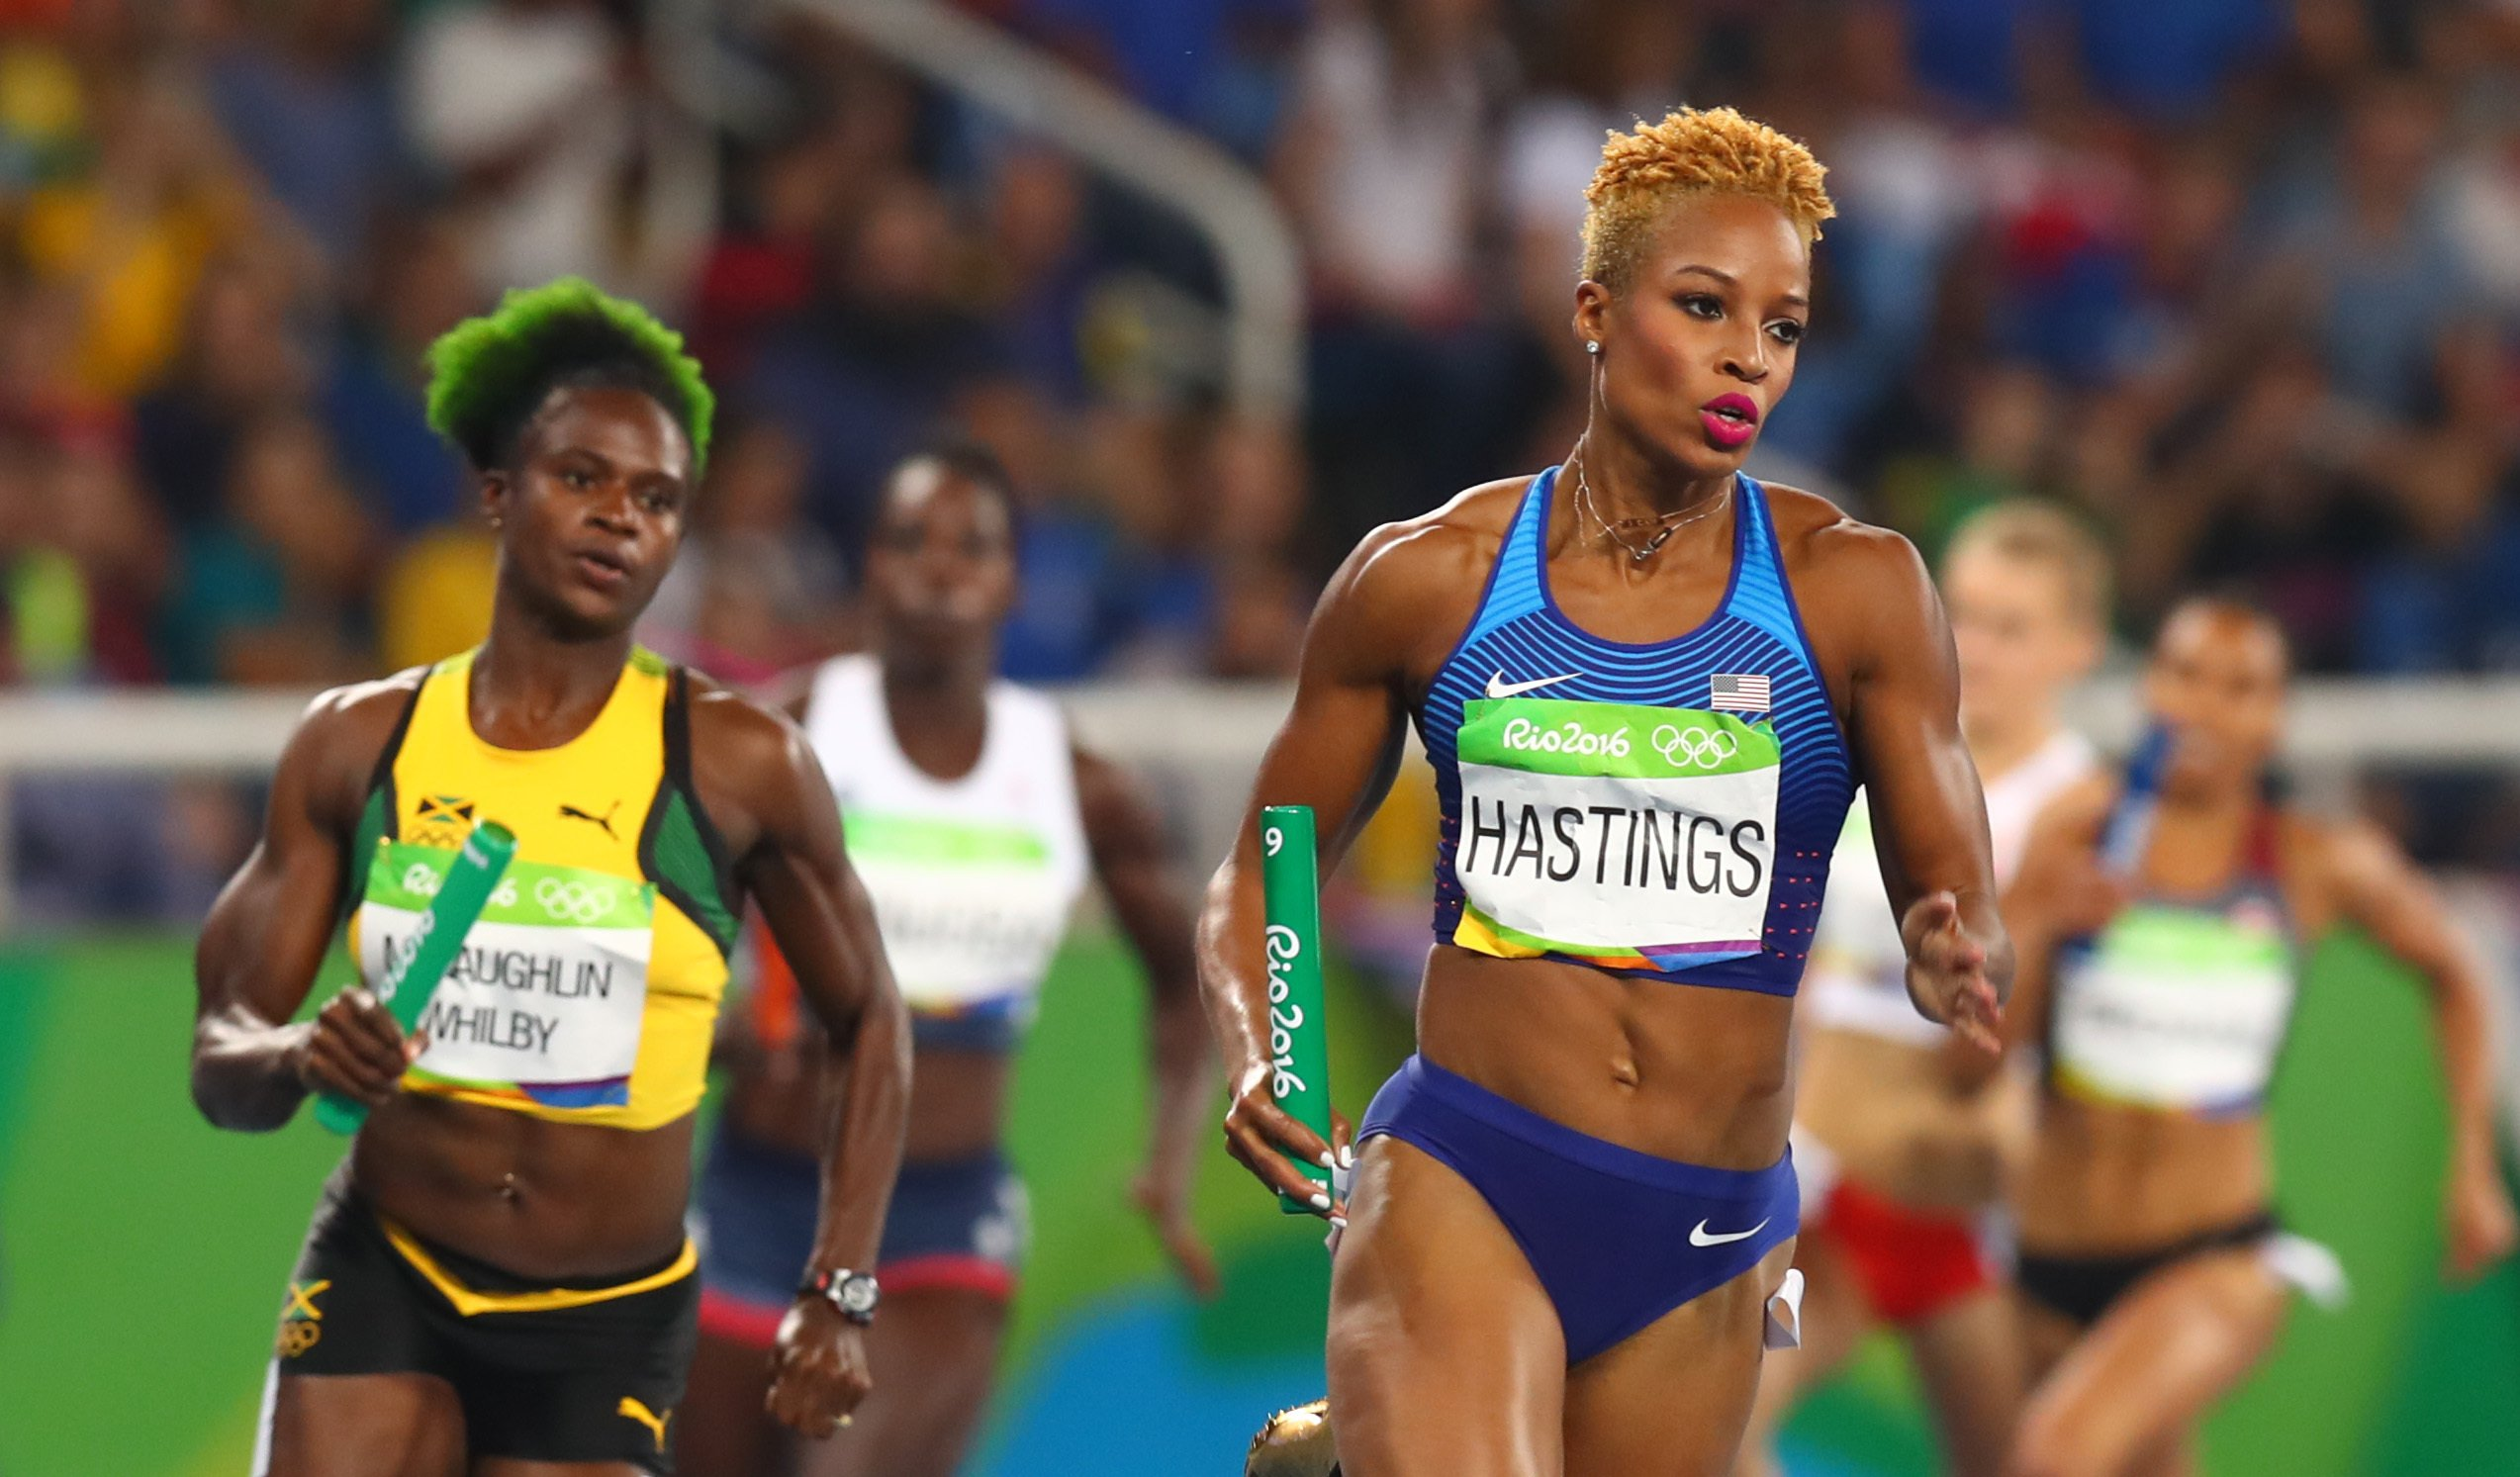 Olympic gold medallist Natasha Hastings hid her pregnancy from sponsors due to worry over their reaction